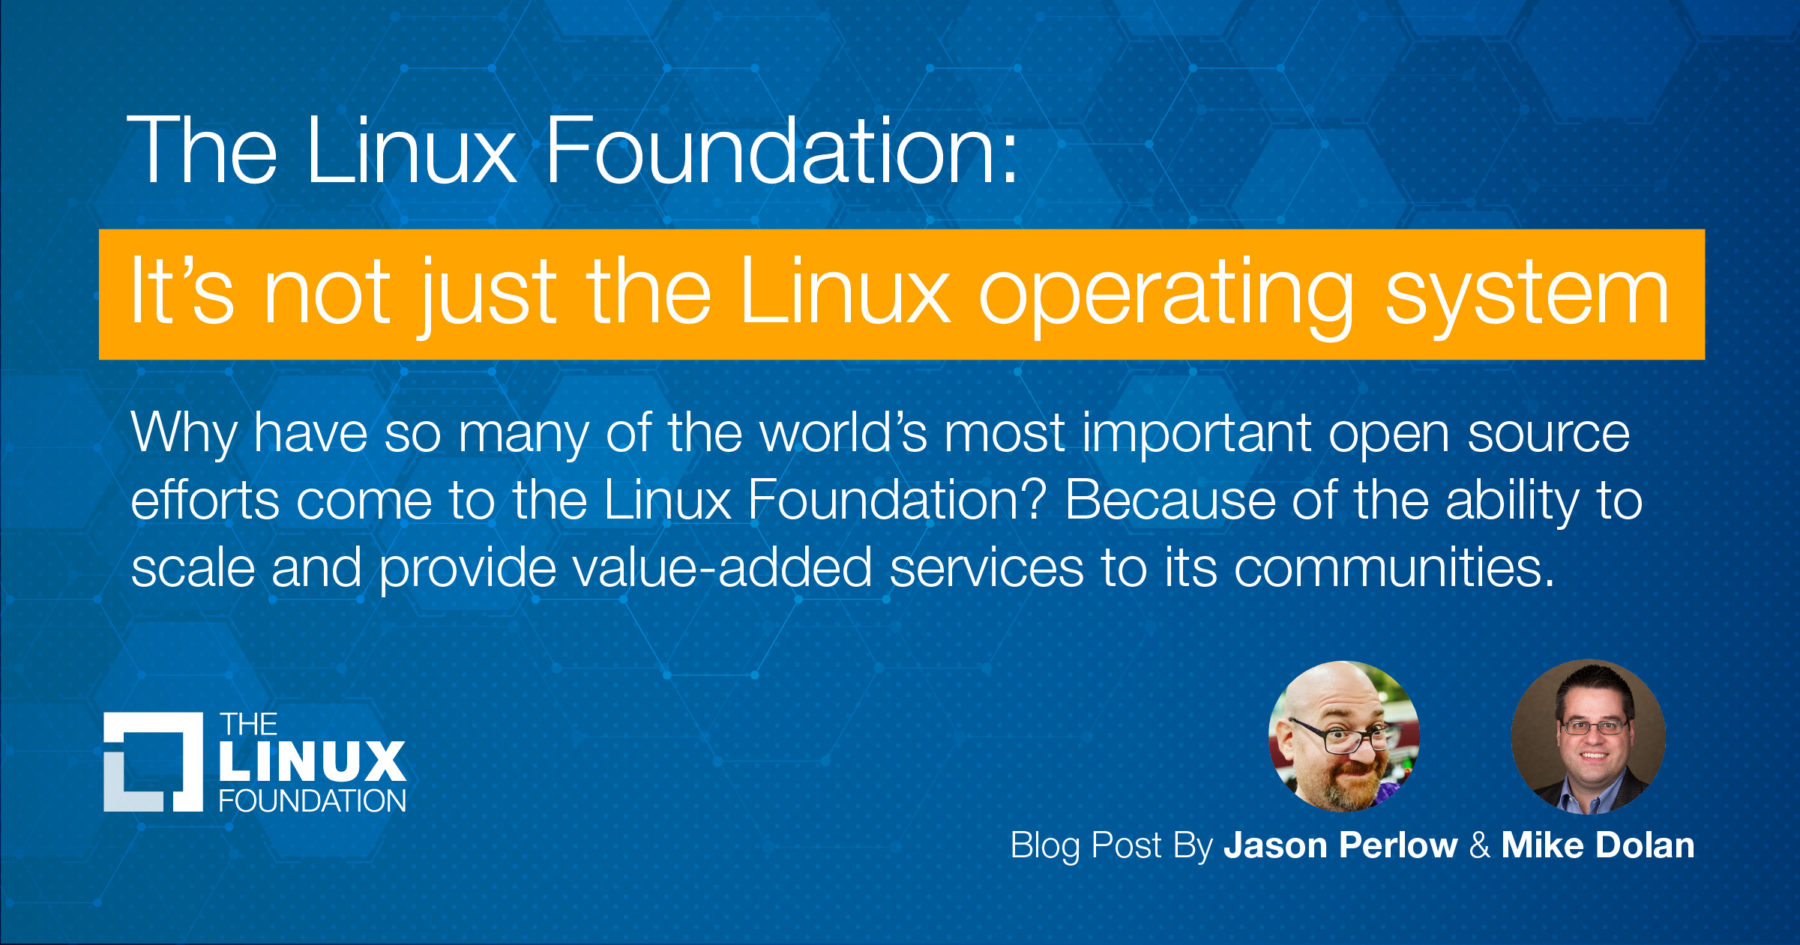 It's not just the Linux operating system